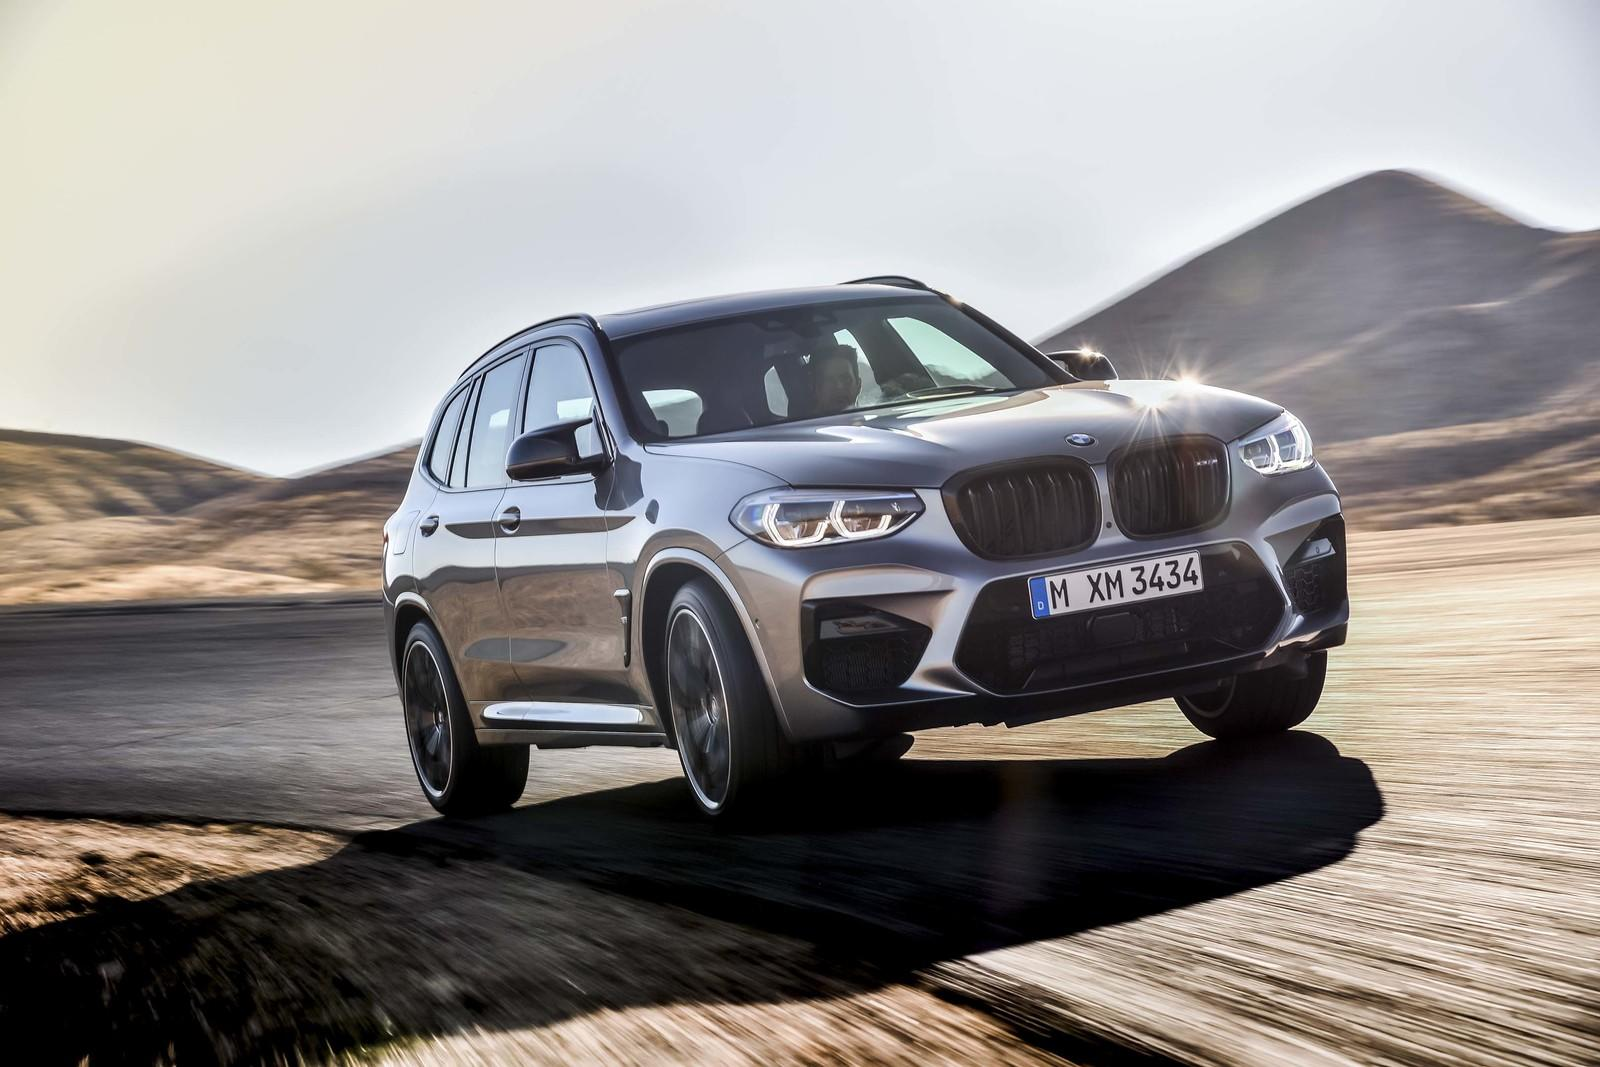 2020 bmw x3 m pictures  photos  wallpapers and videos